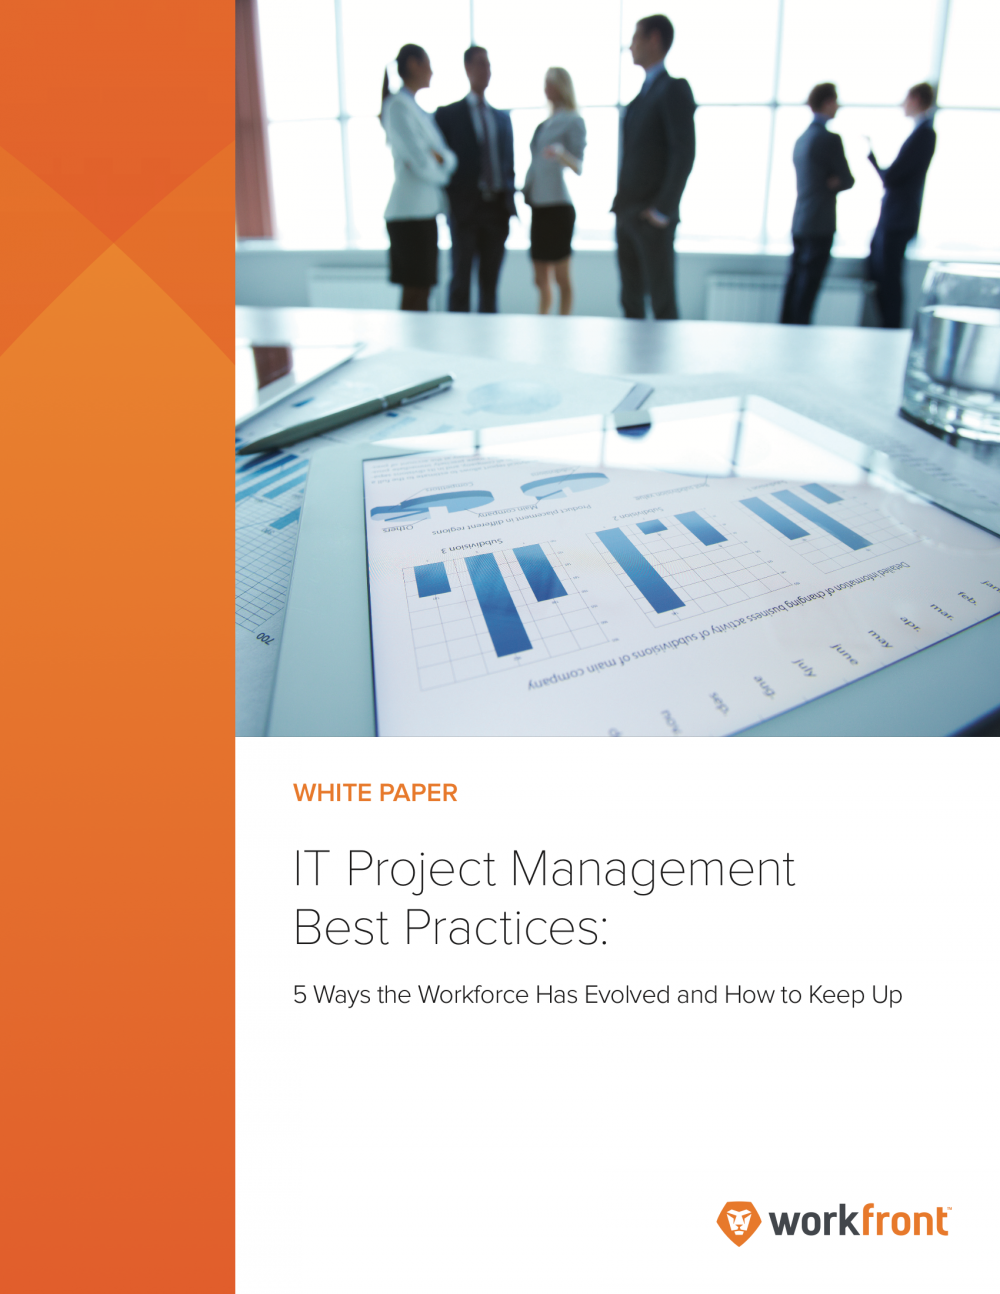 IT Project Management Best Practices: 5 Ways the Workforce Has Evolved and How to Keep Up